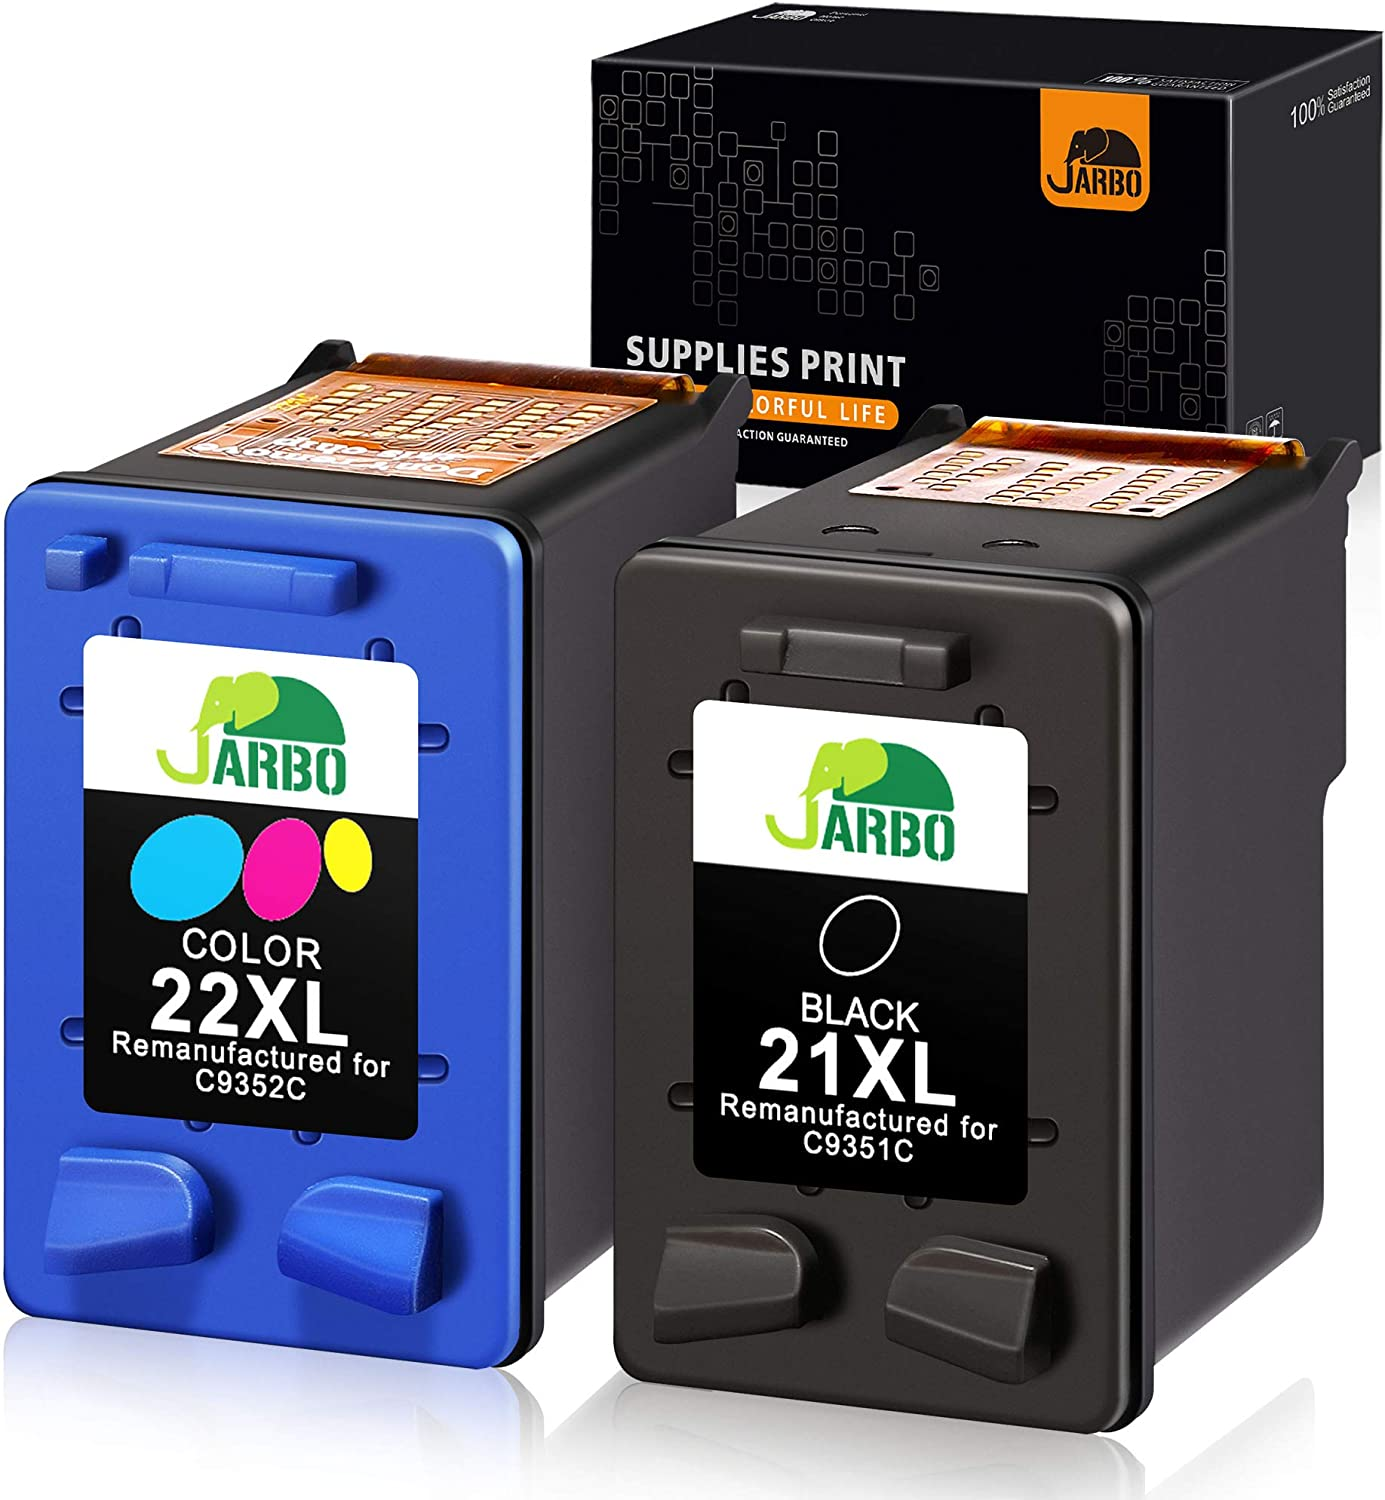 JARBO Manufactured Ink Cartridge for HP 21 22 21XL 22XL, 1 Black+1 Tri-Color, Used with HP Officejet 4315 J3680 Deskjet 3915 3930 3940 D1341 D1420 D1455 D1520 D1530 D1560 D2330 D2430 D2460 PSC 1410